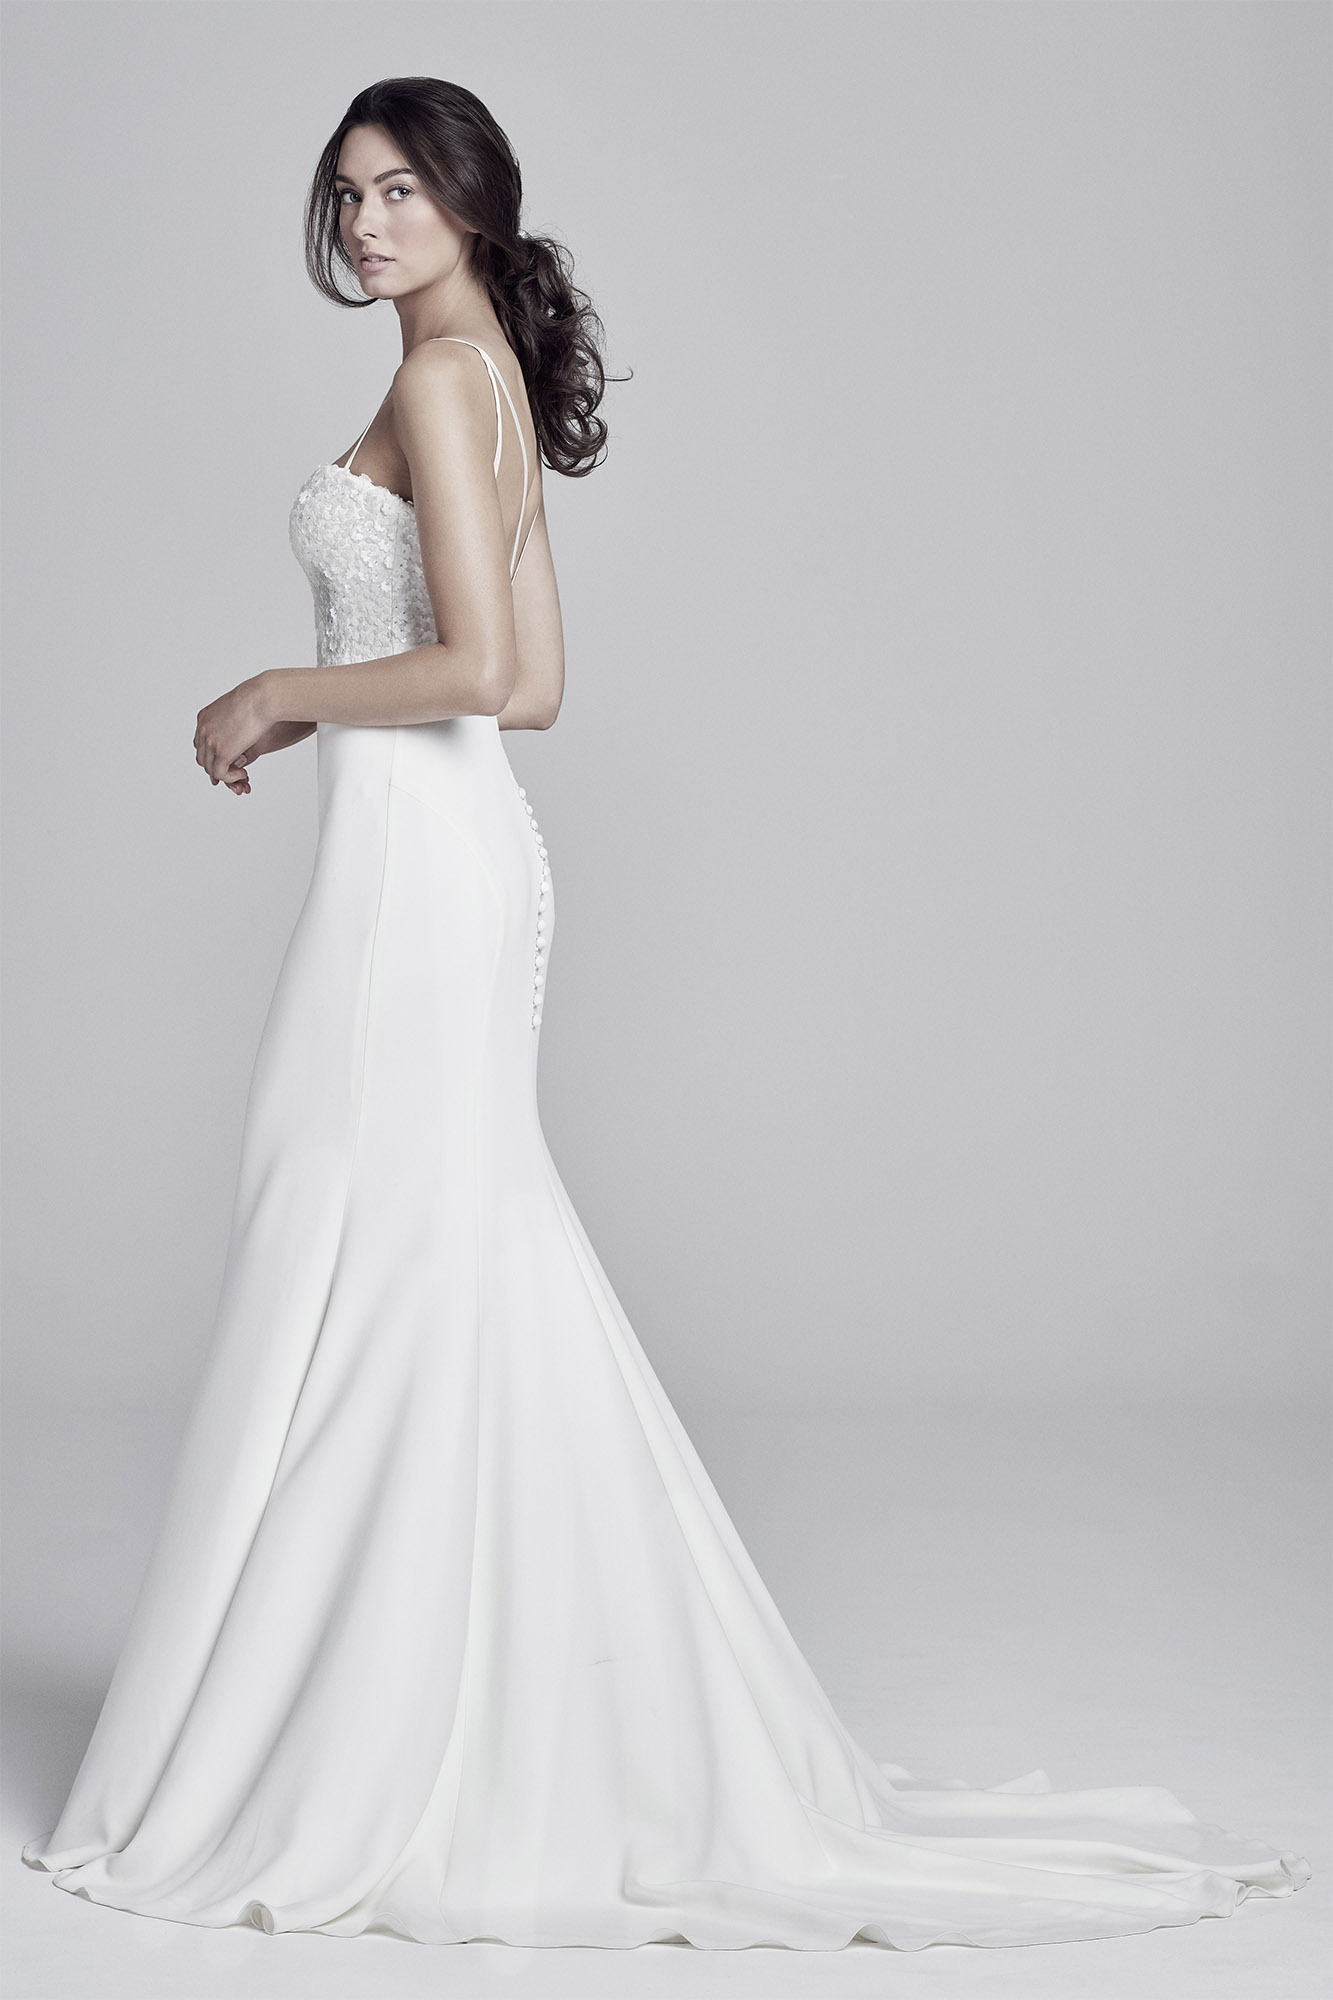 Shoulder Dress Bronte | Collections 2019 Lookbook | Uk Designer Wedding